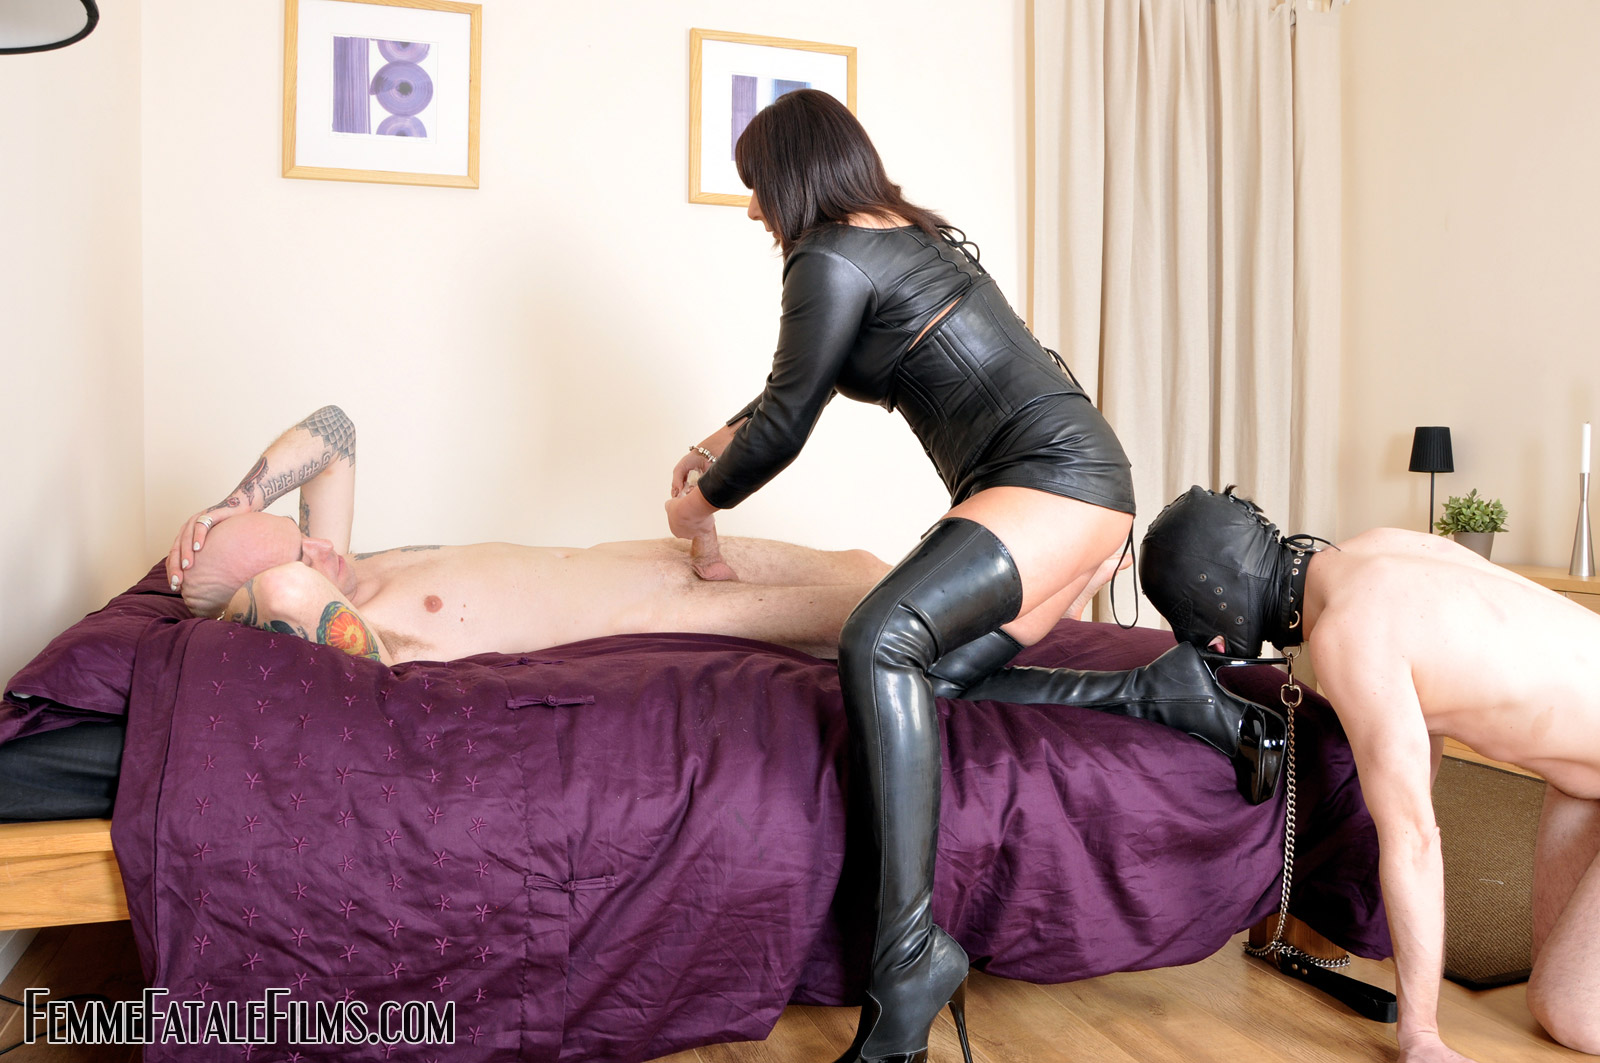 Cuckolded by mistress t and shane diesel - 1 1